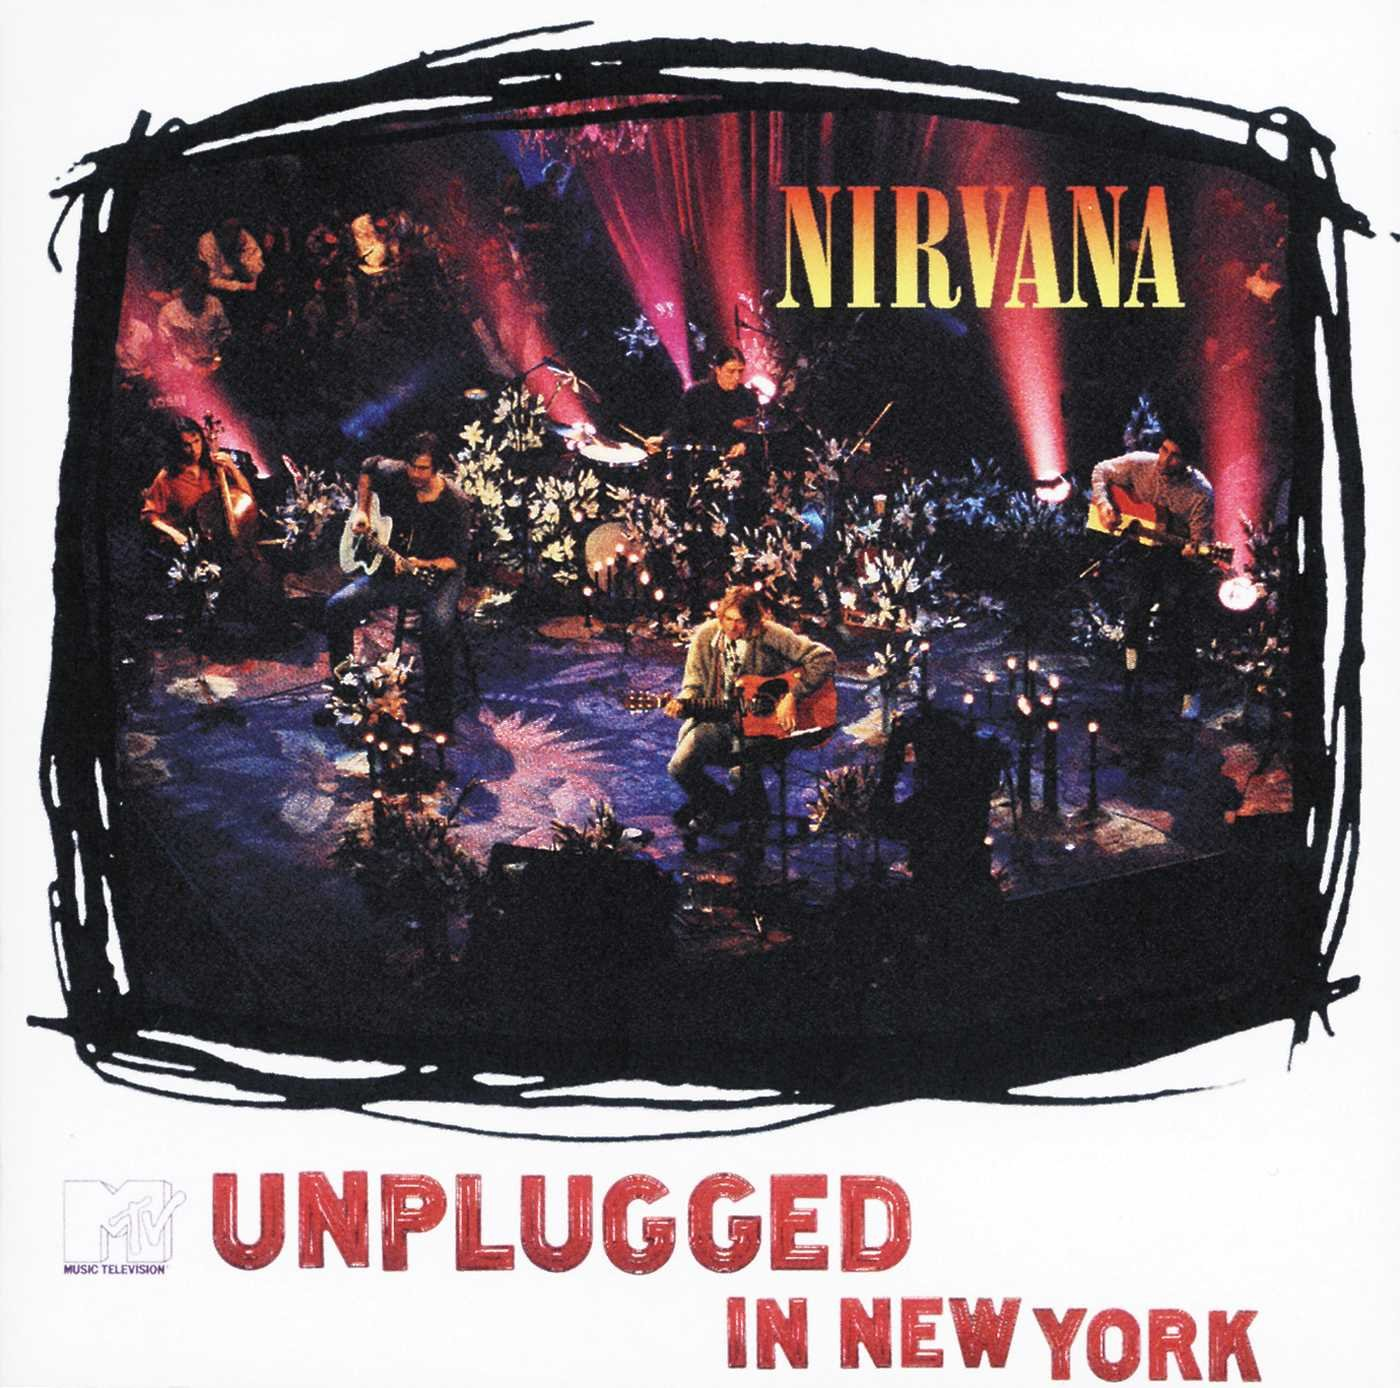 unplugged nirvana